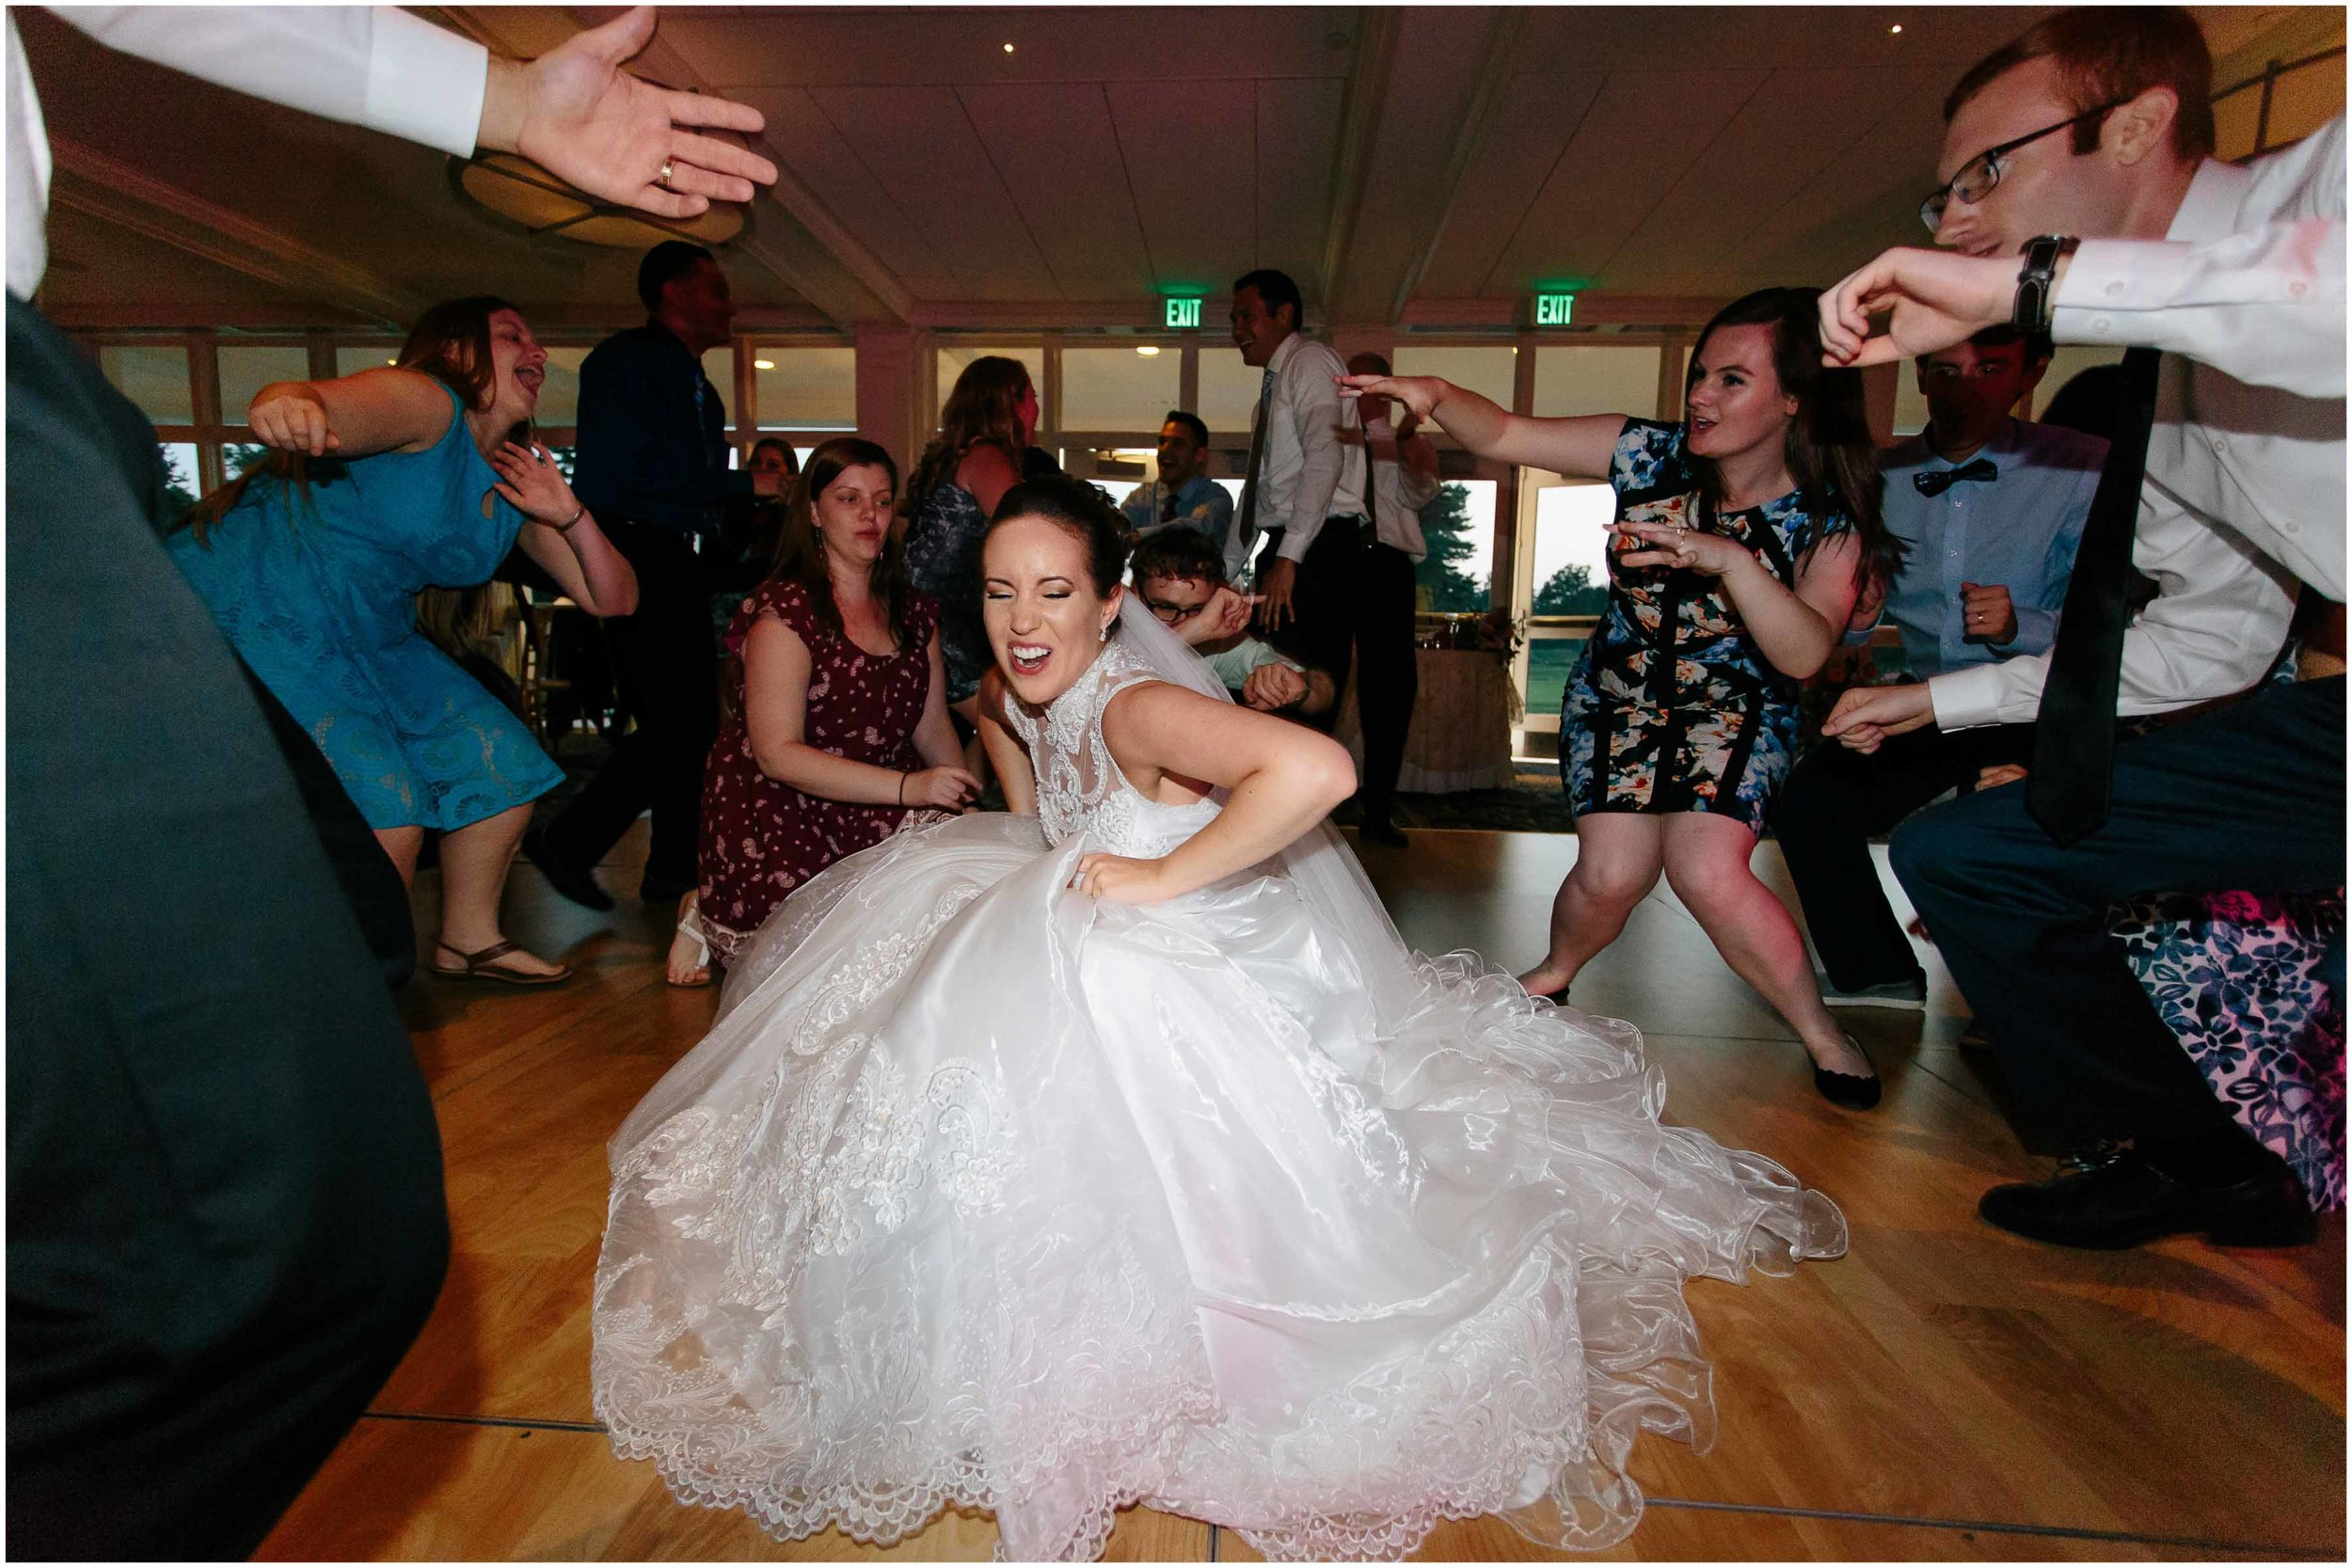 Chic New Hampshire Wedding at Manchester Country Club Bedford - bride dancing